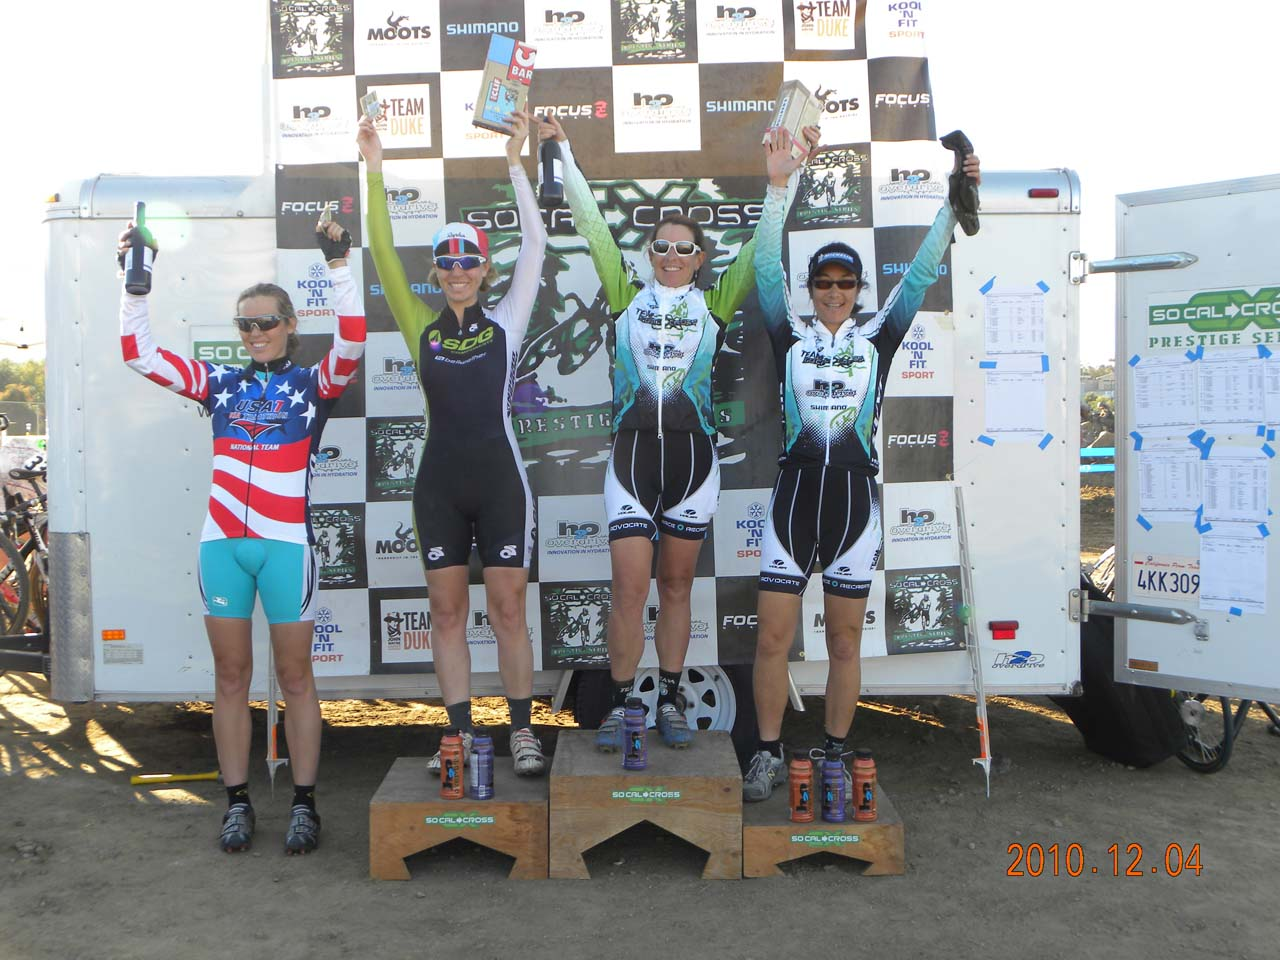 The Elite Women's podium. © Kenneth Hill, Light and Shadow Photography